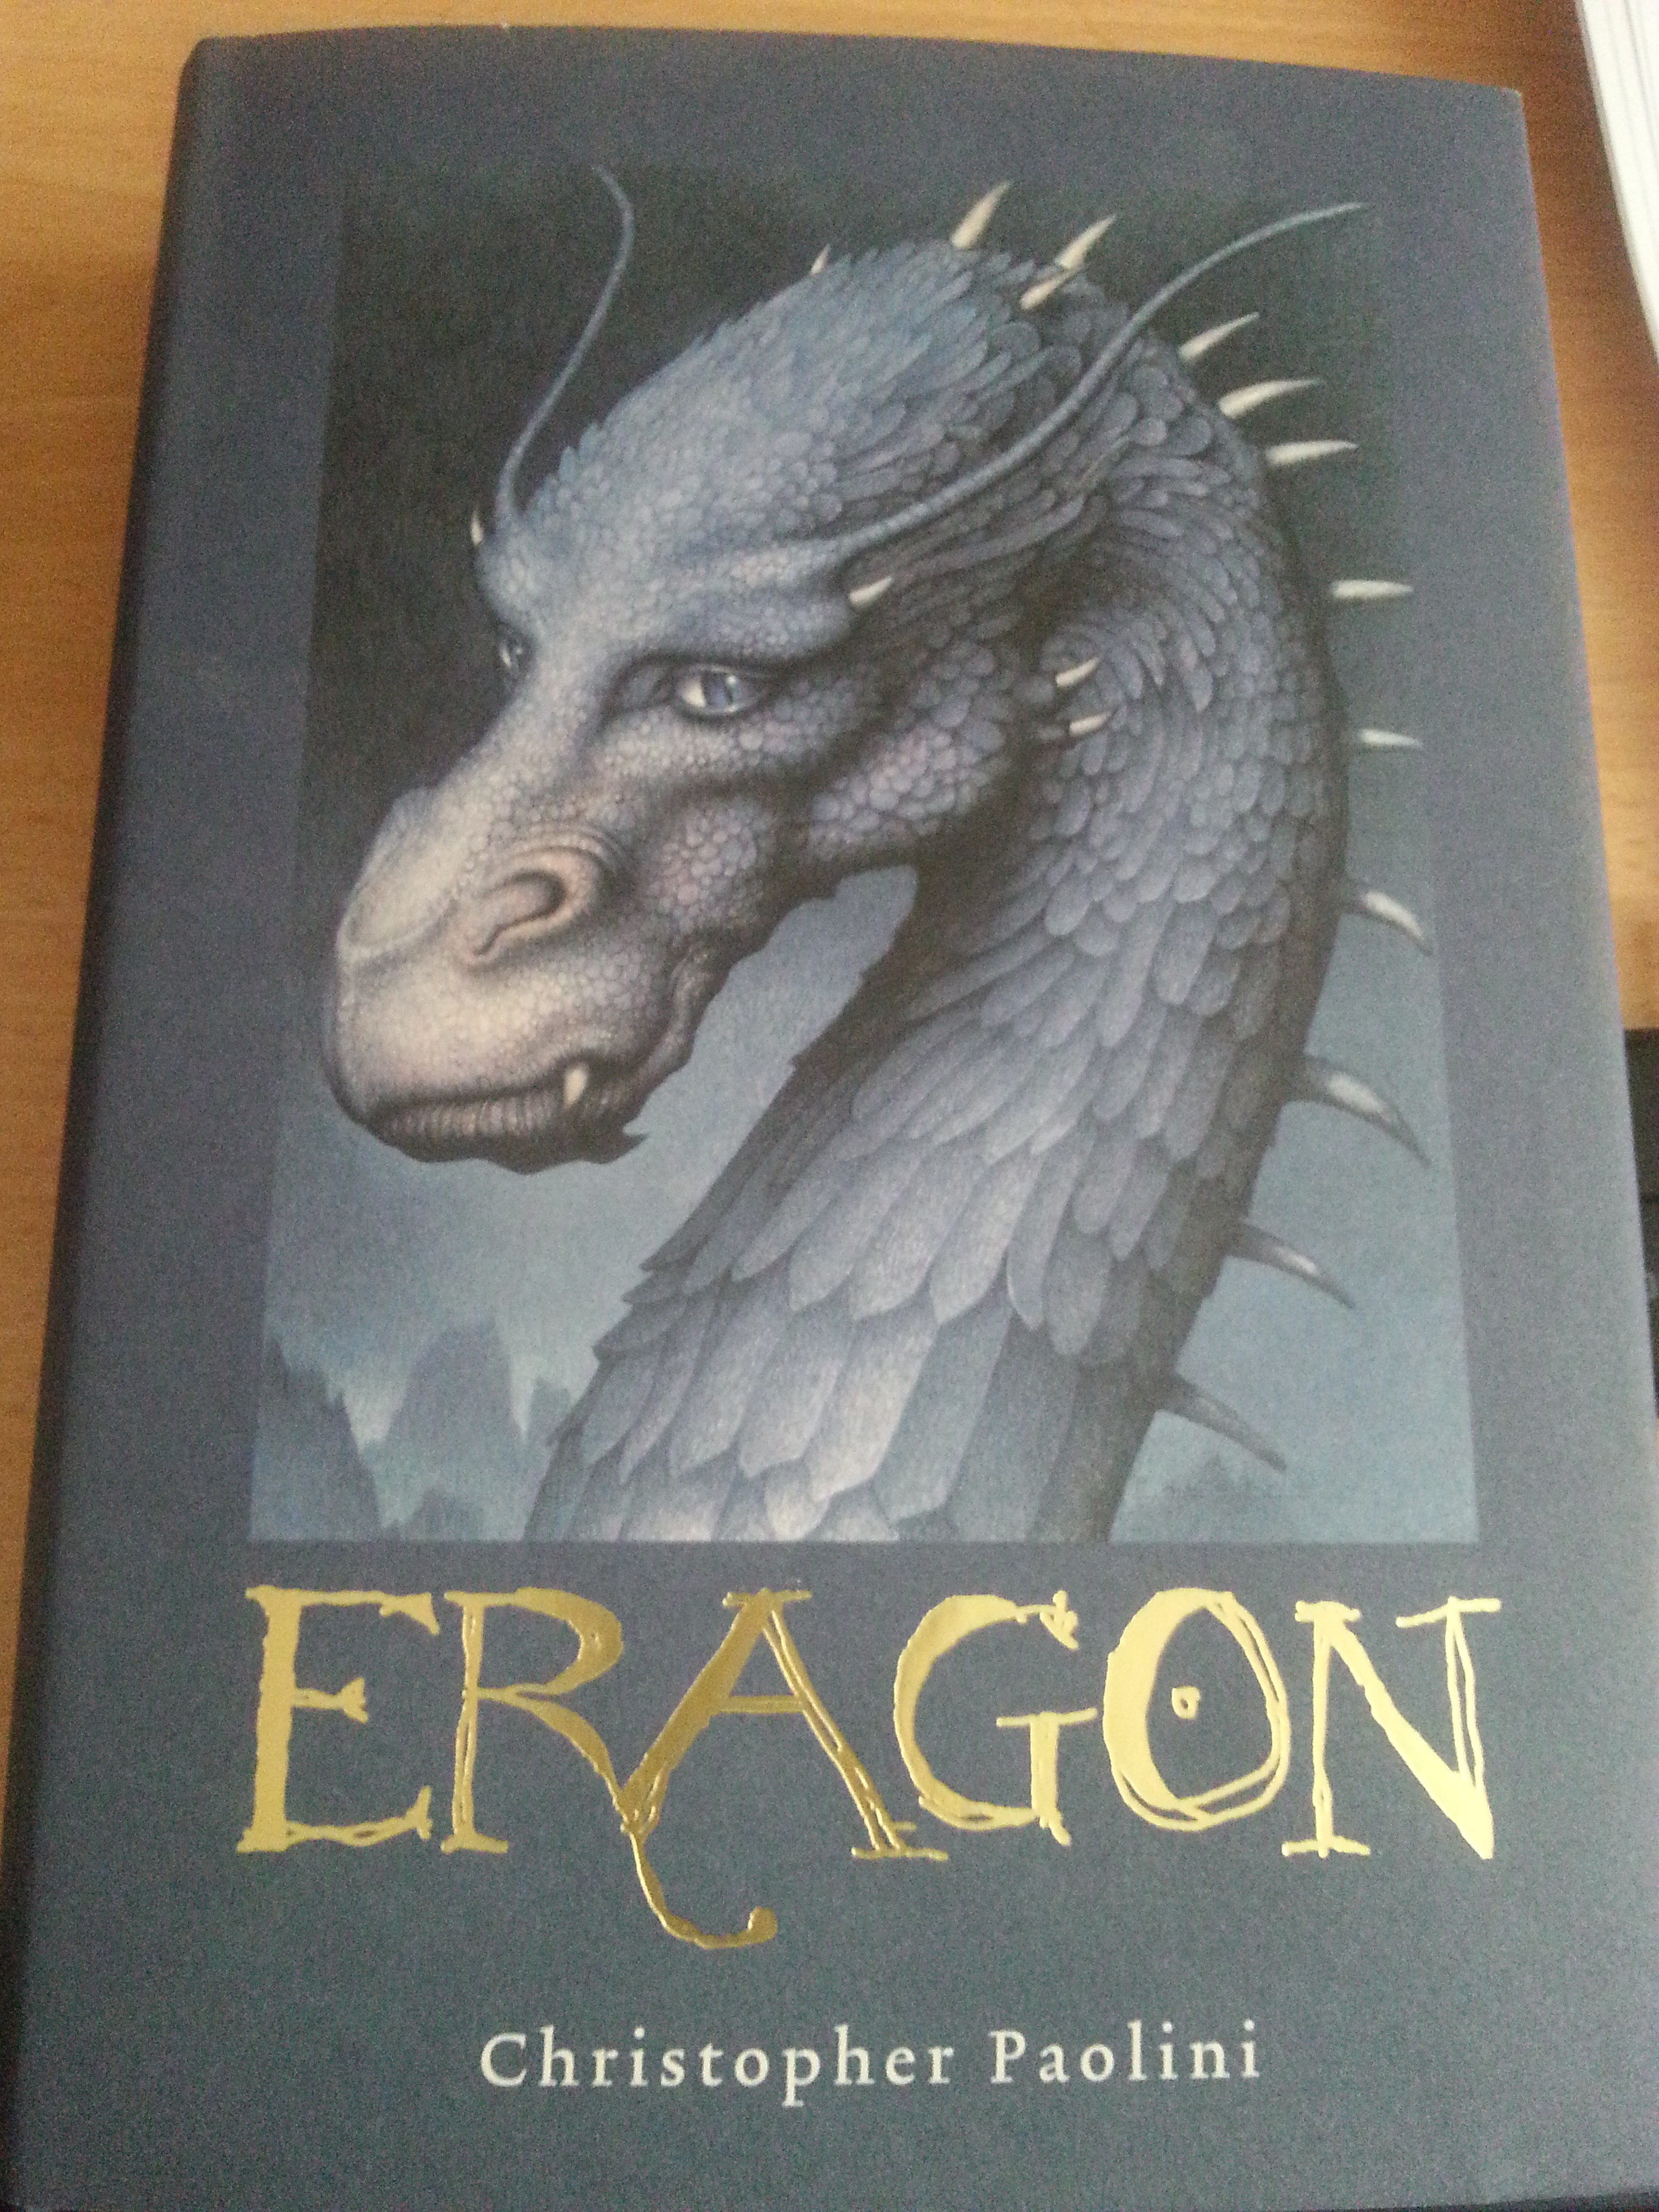 Eragon by Christopher Paolini...